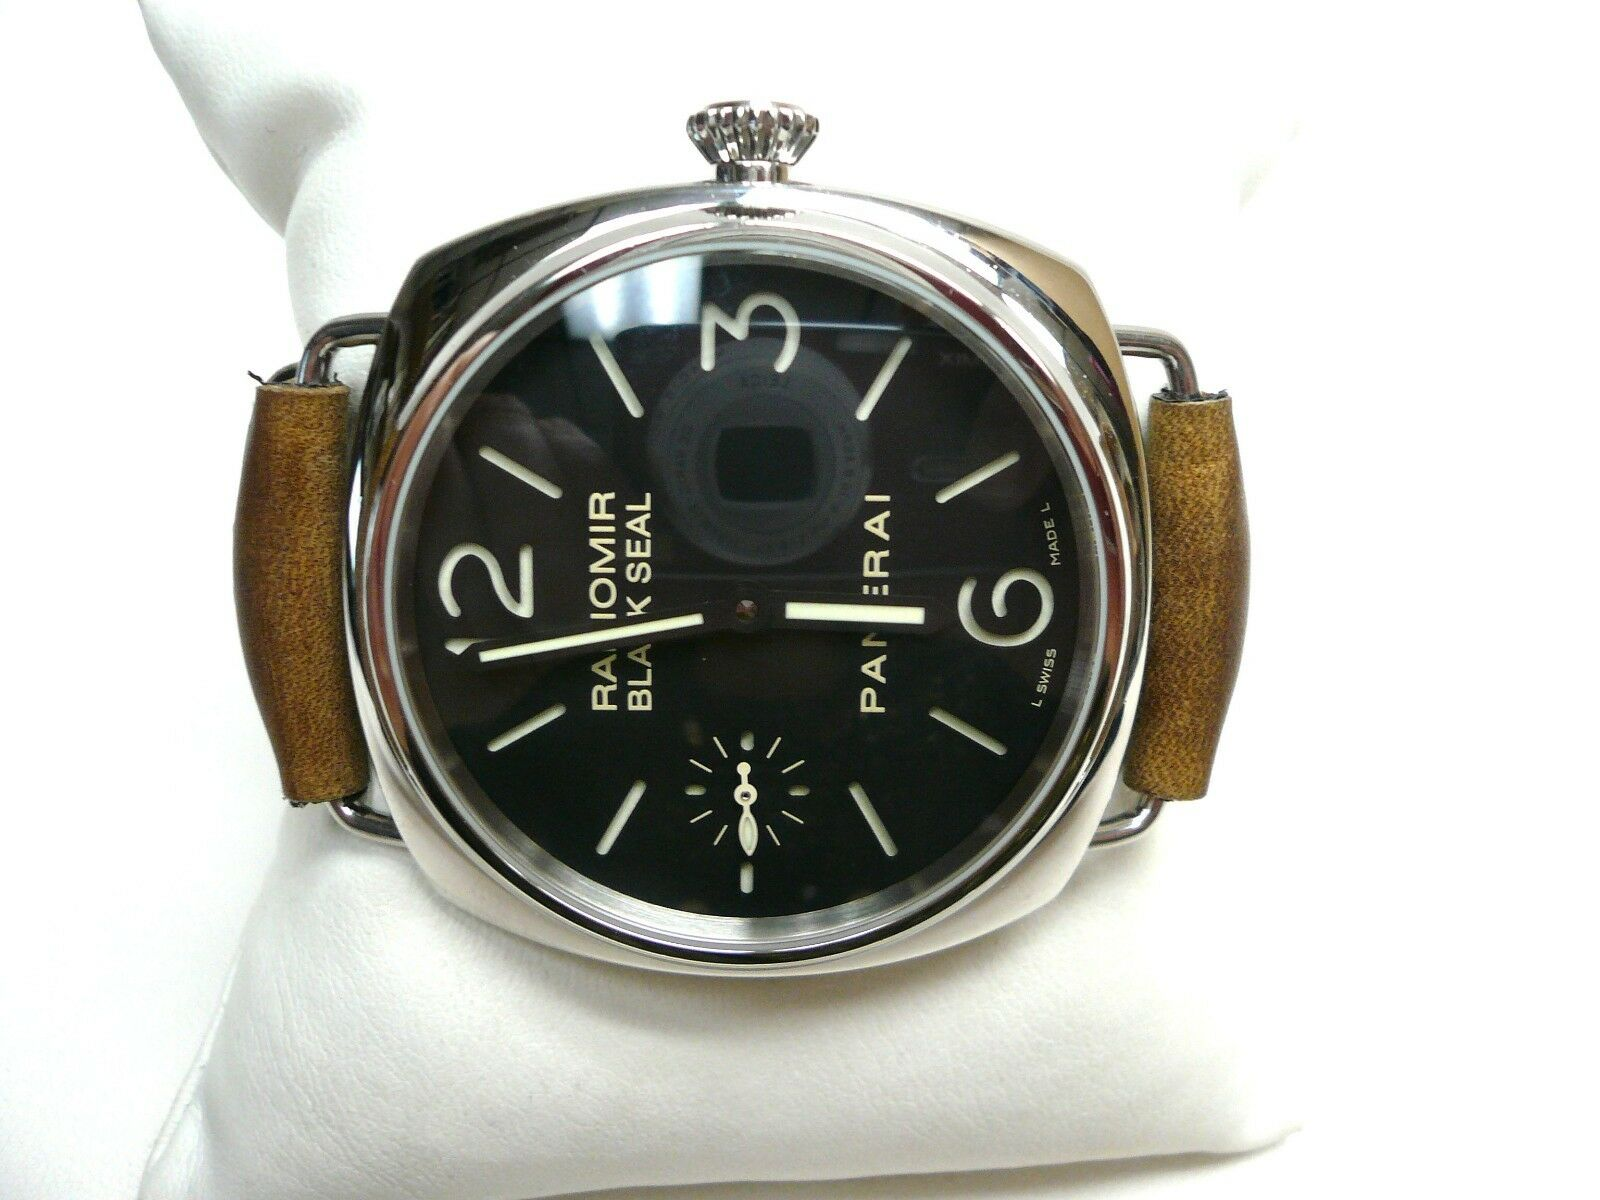 Panerai PAM 183 Black Seal Radiomir Manual Wind Sandwich Dial Strap Wristwatch - watch picture 1